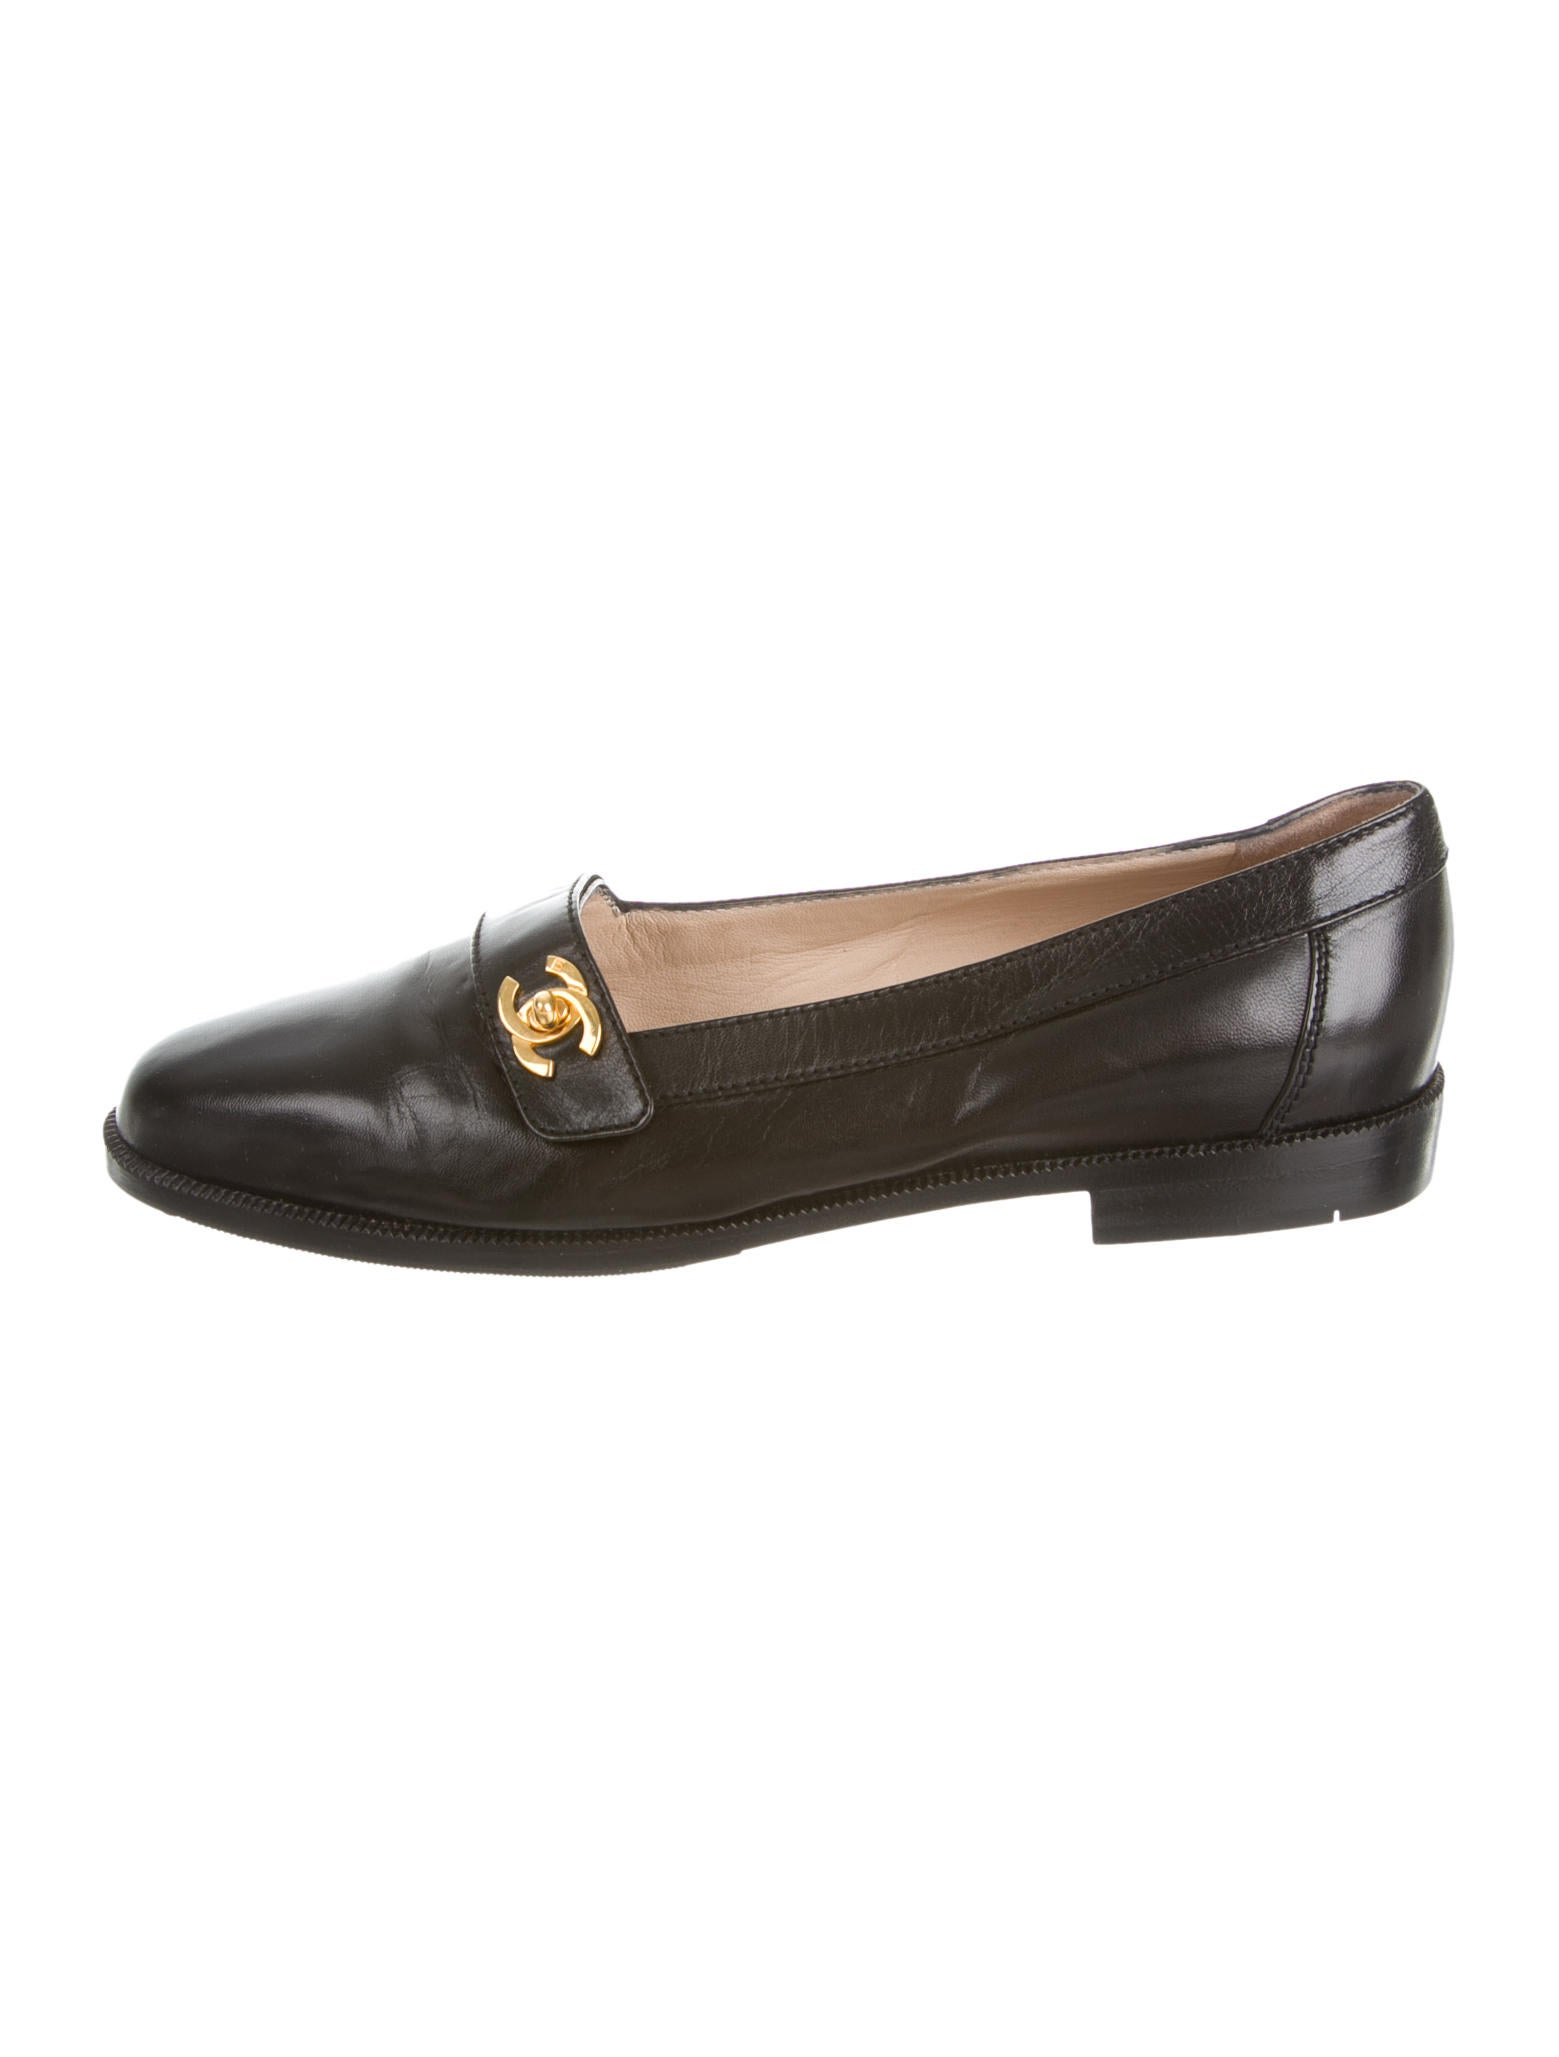 Chanel Loafers - Shoes - CHA76681 | The RealReal